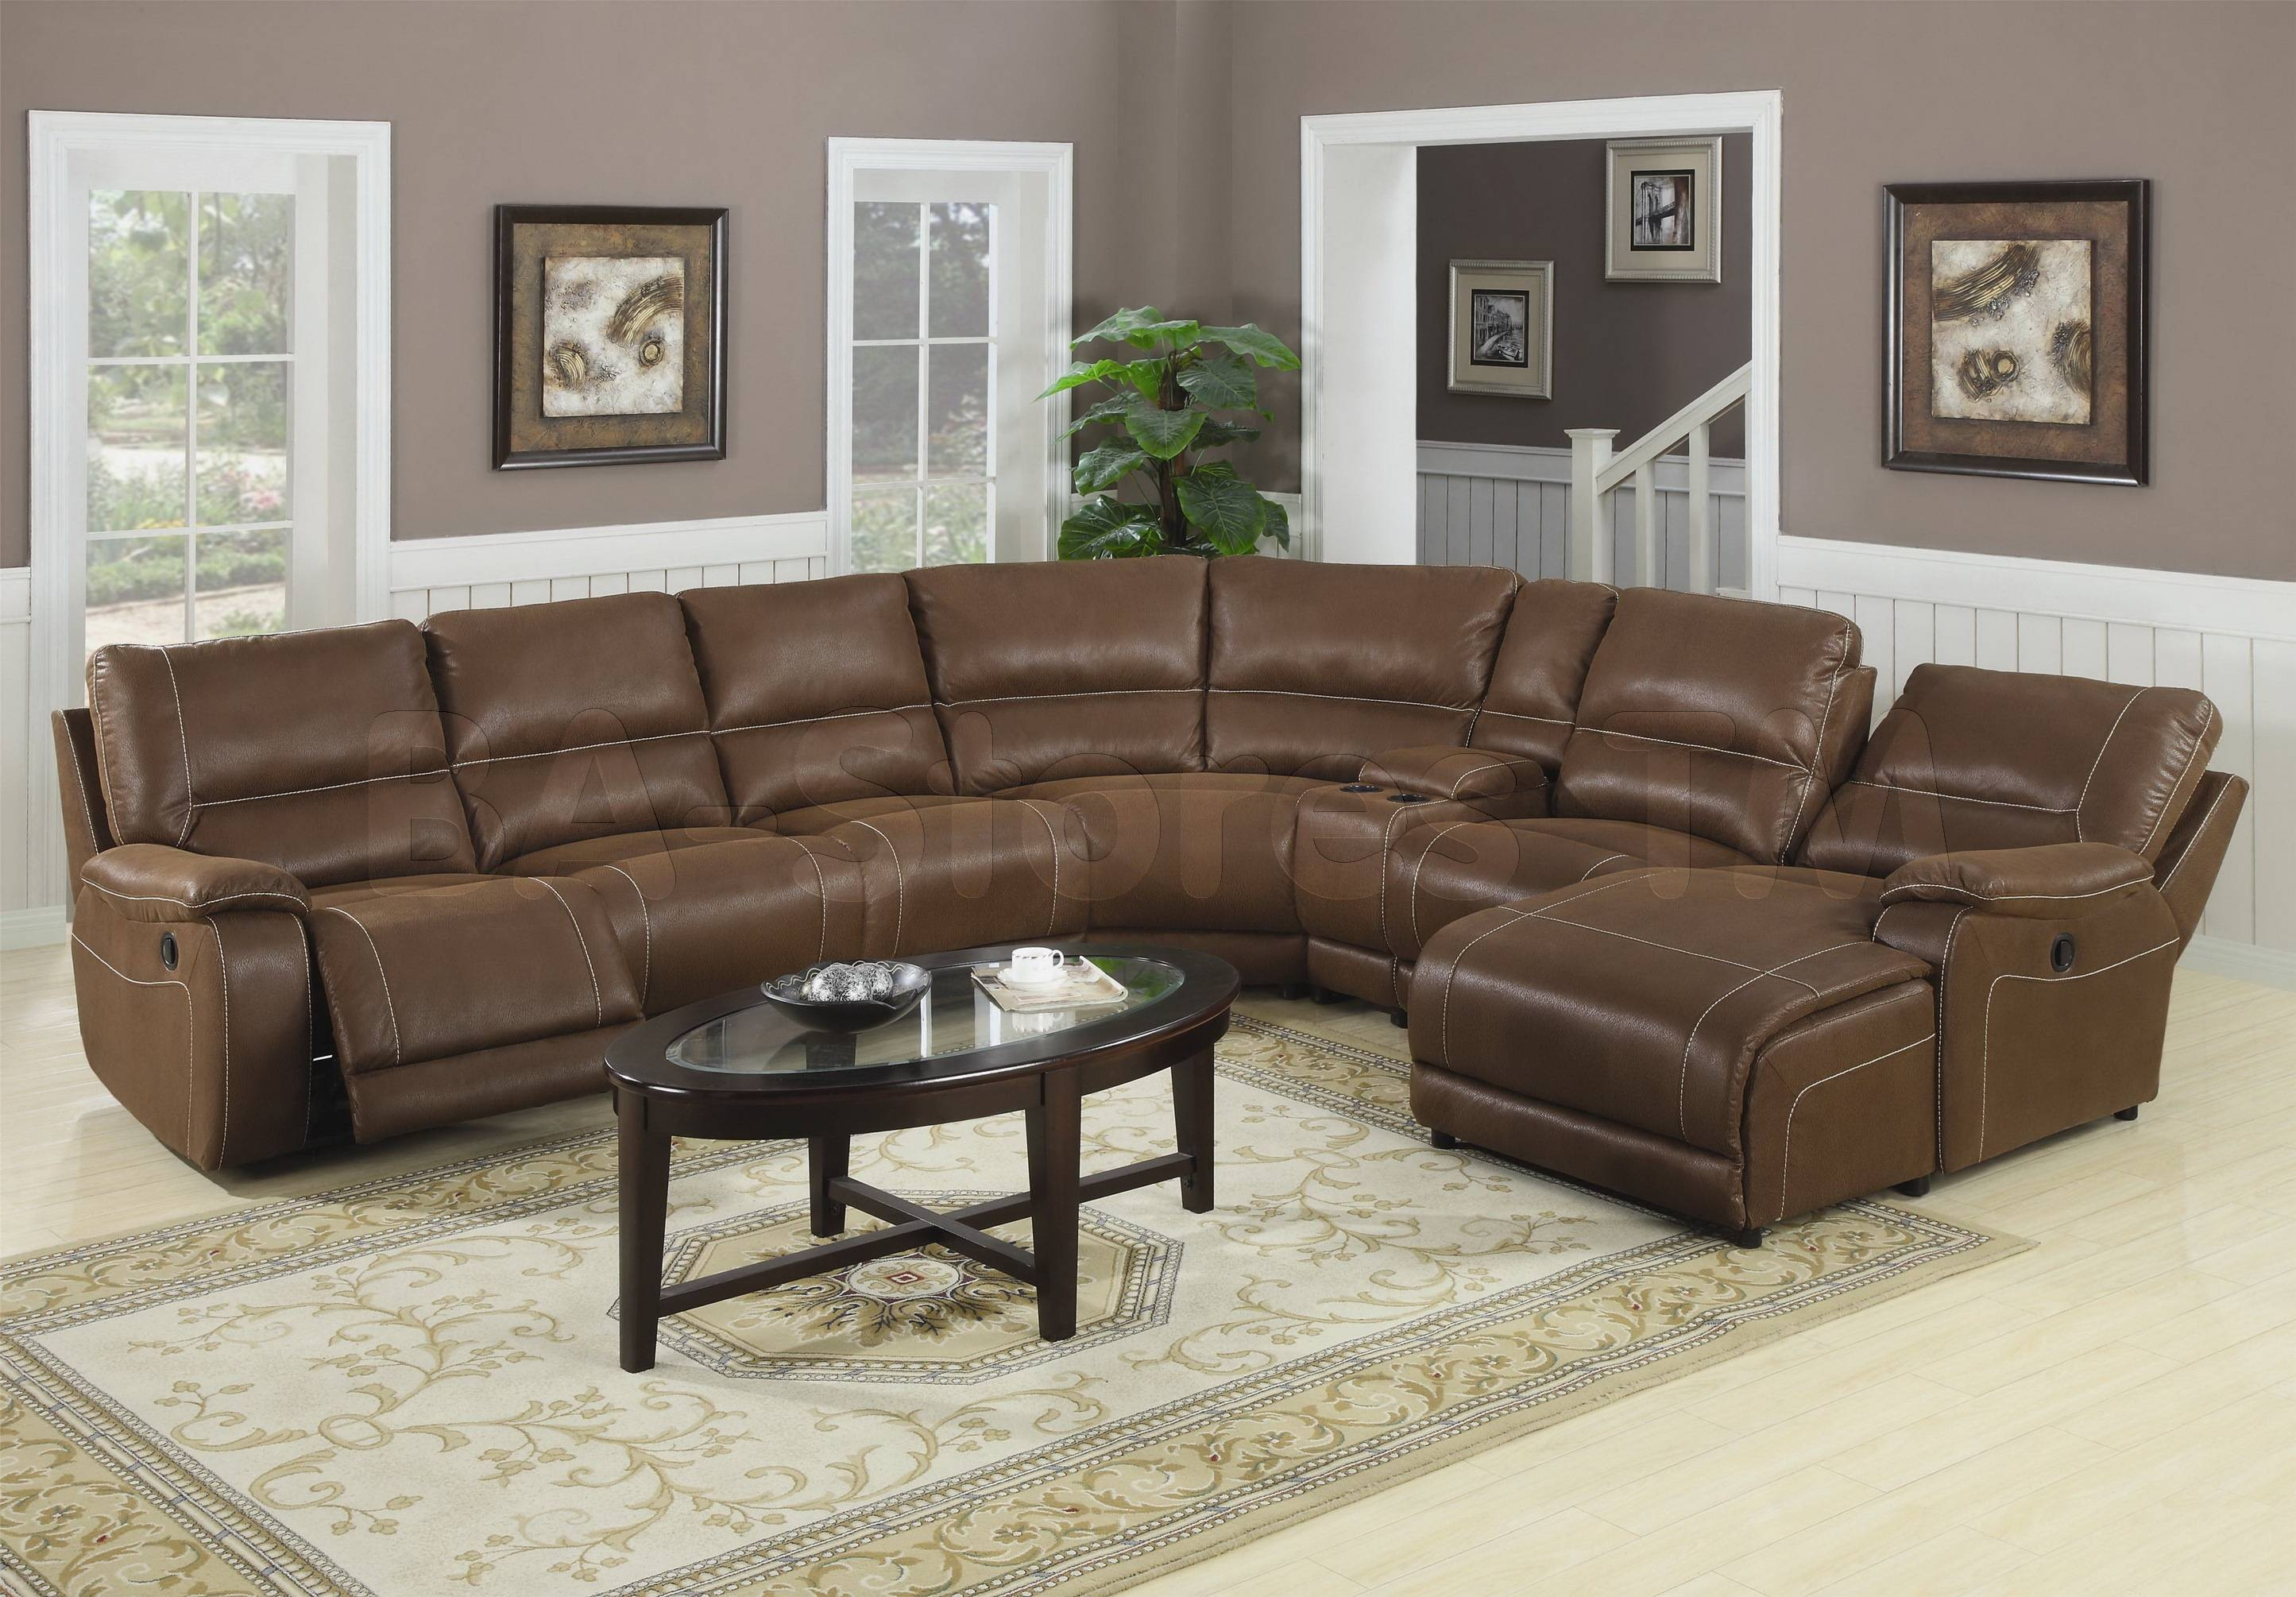 Interior: Luxury Oversized Sectional Sofa For Awesome Living Room inside Extra Large Sectional Sofas (Image 16 of 30)